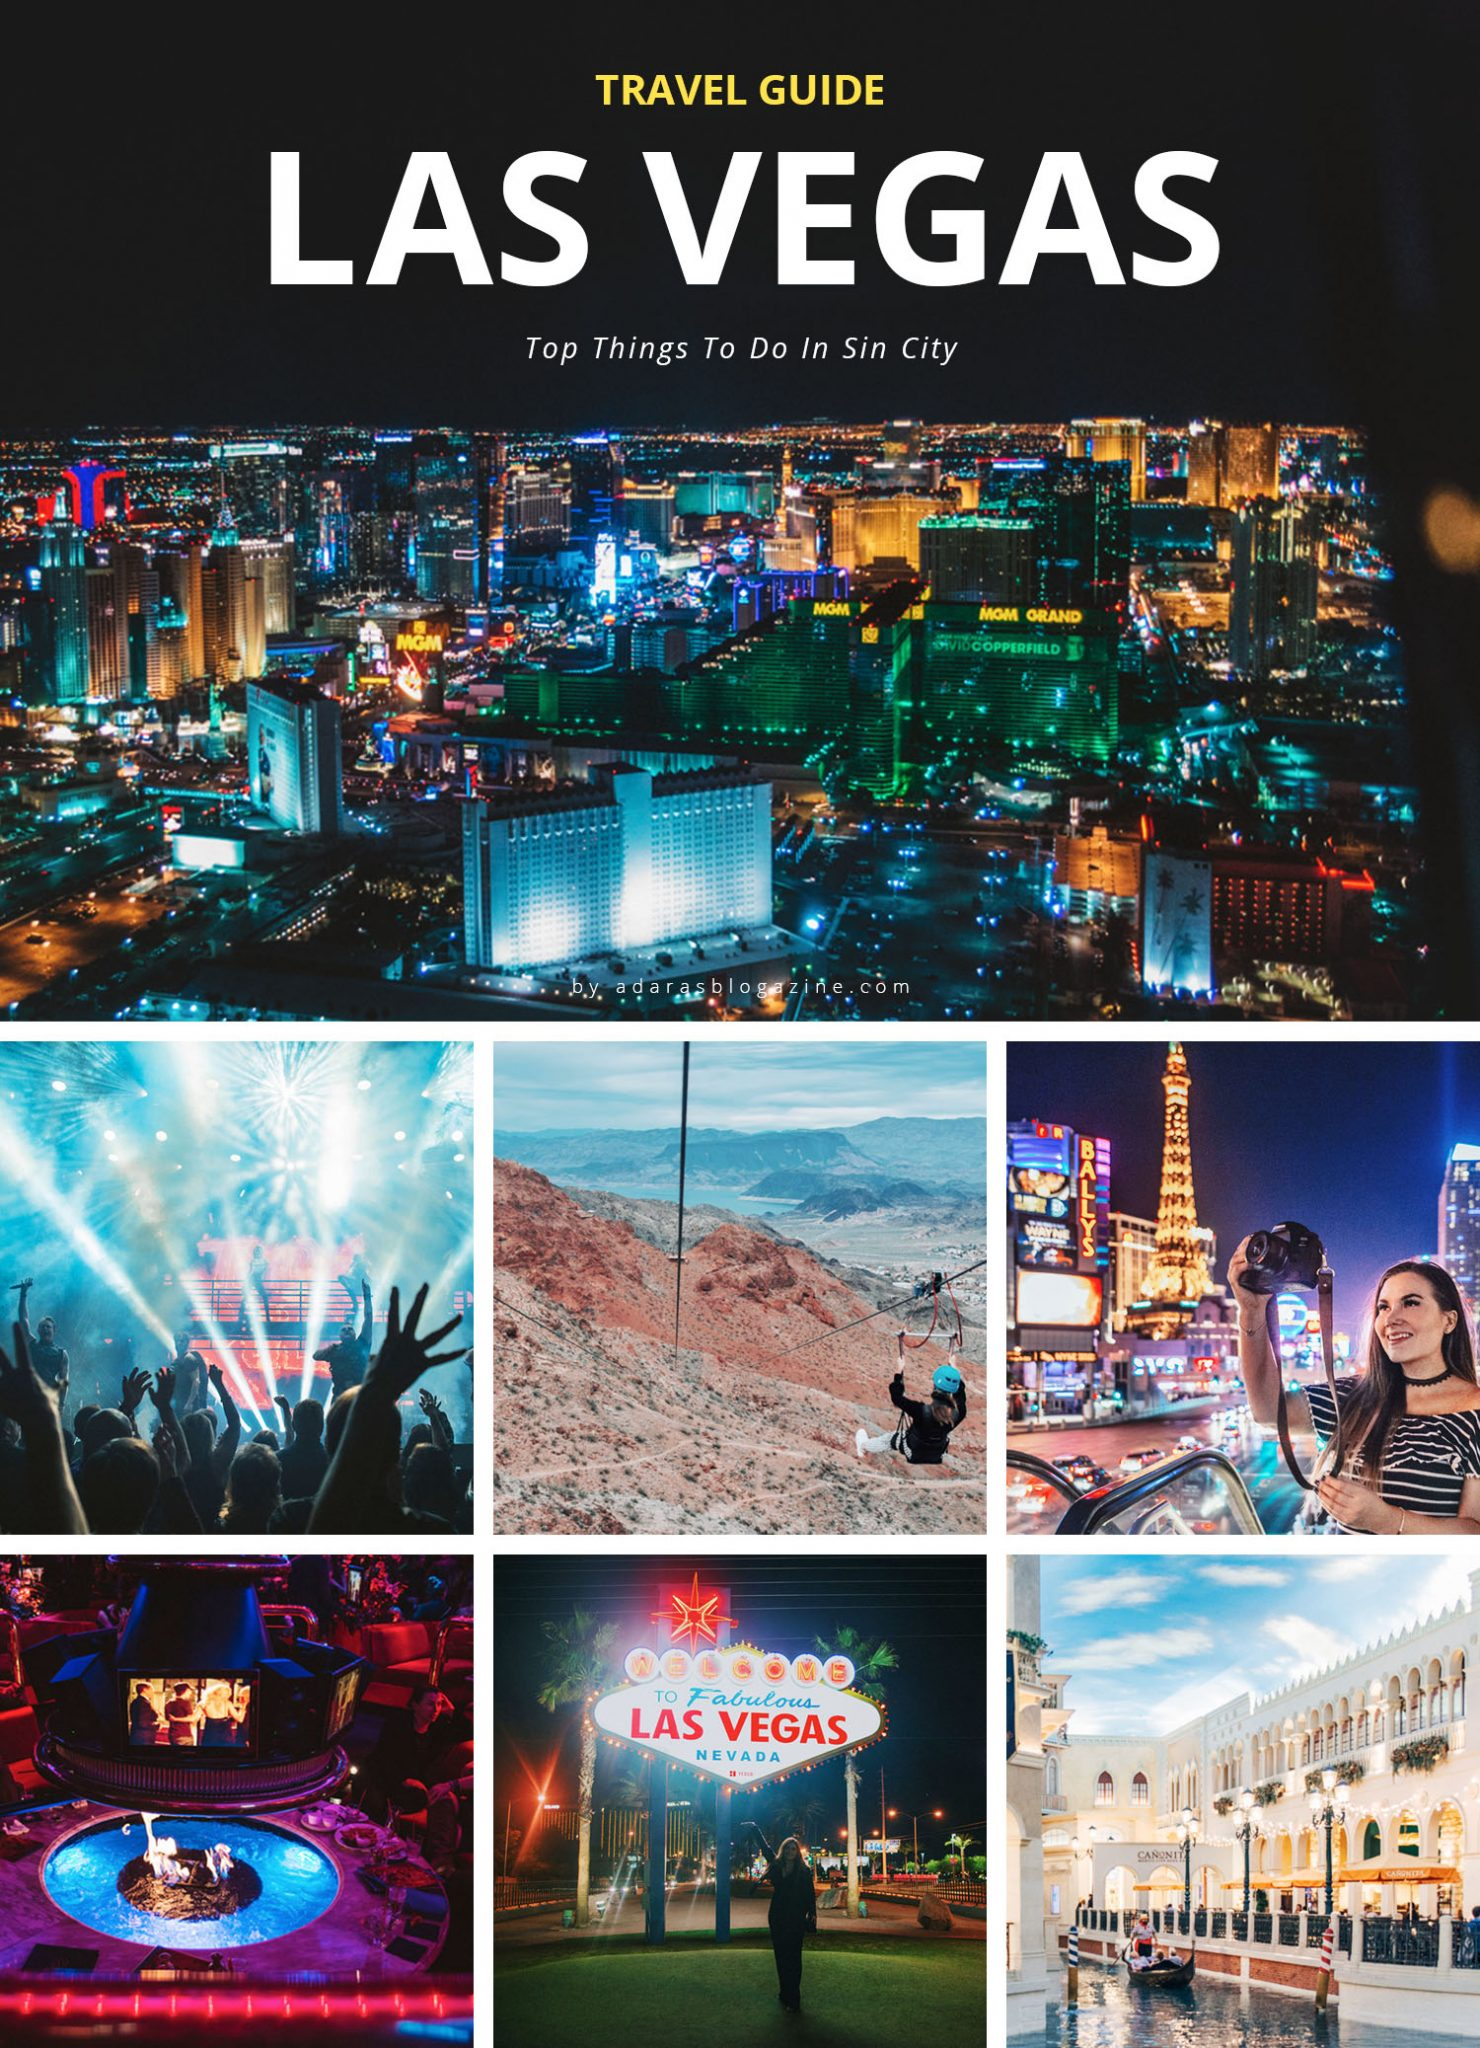 Top things to do in Las Vegas - Travel Guide to Sin City